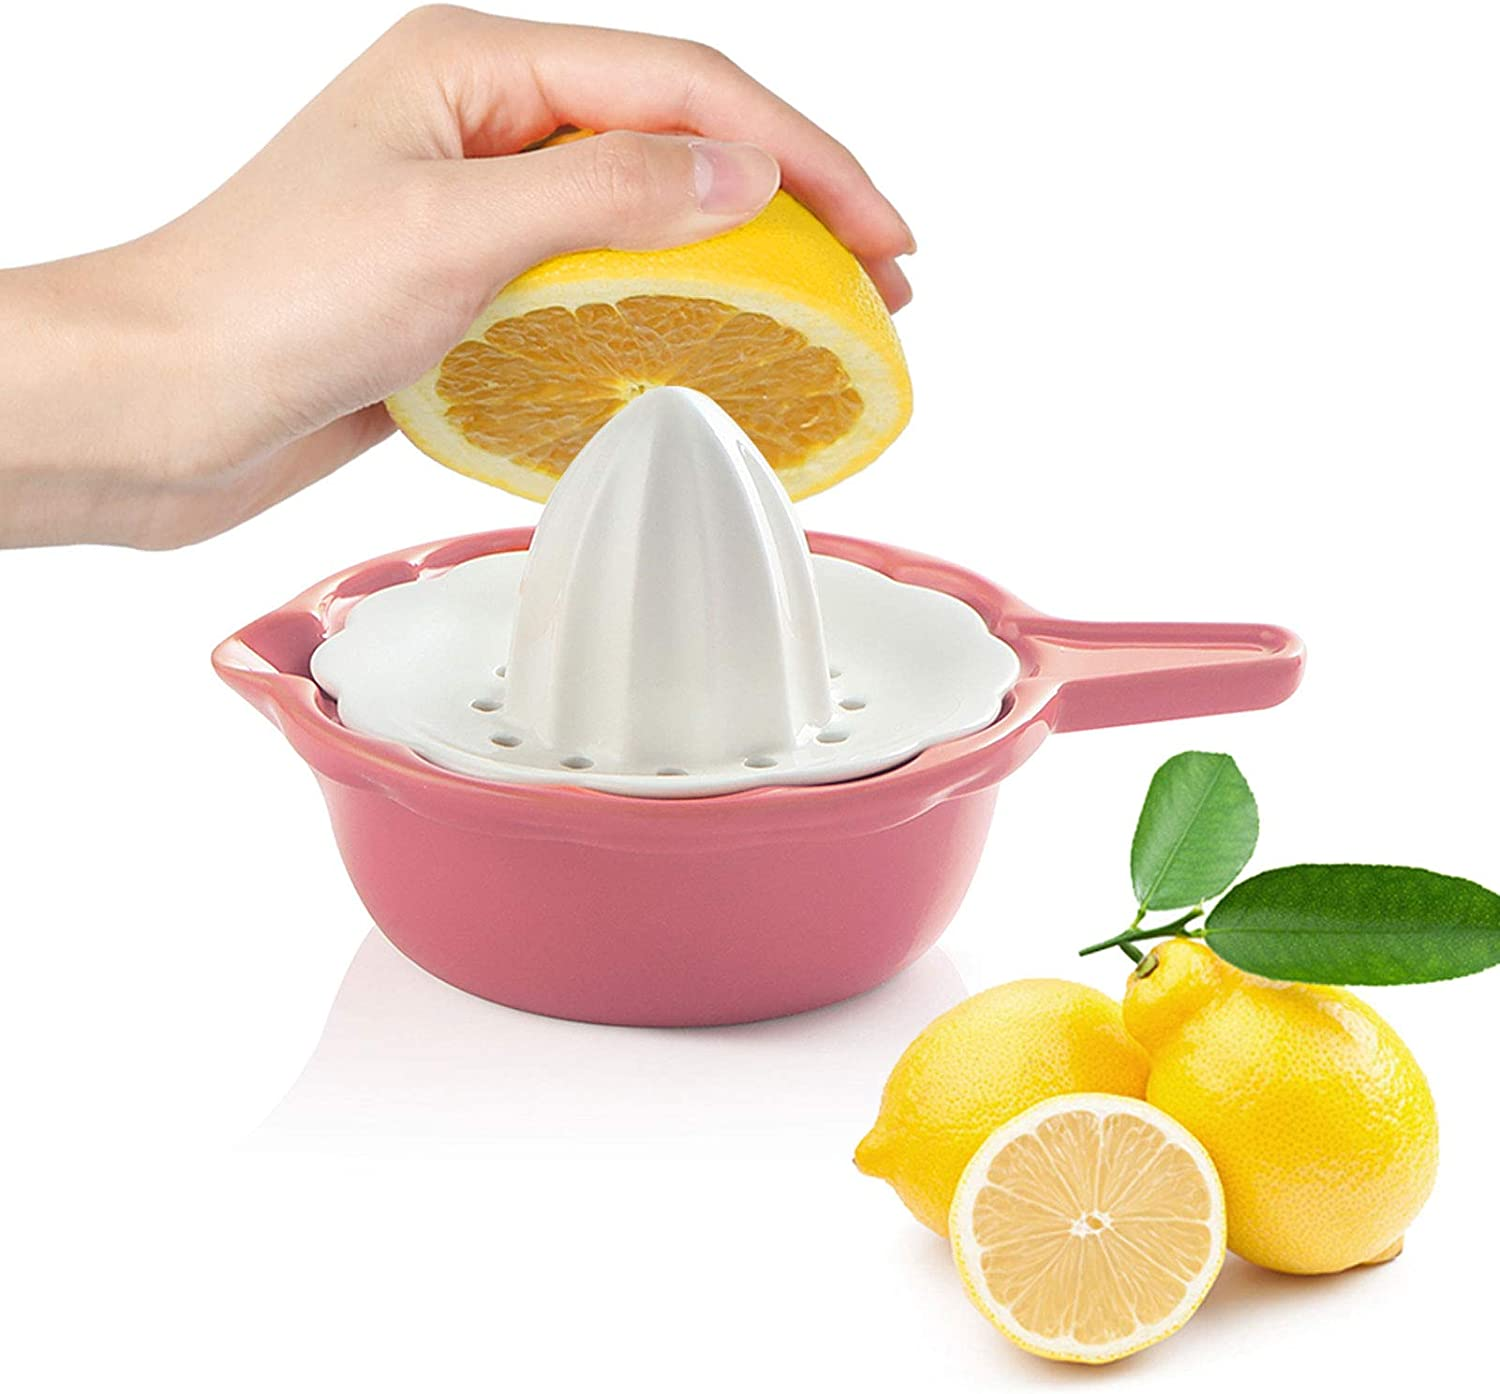 SWEEJAR Ceramic Citrus Juicer, Stoneware Lemon Squeezer with Detachable Bowl, 7 Ounce Manual Fruit Reamer,(Pink)